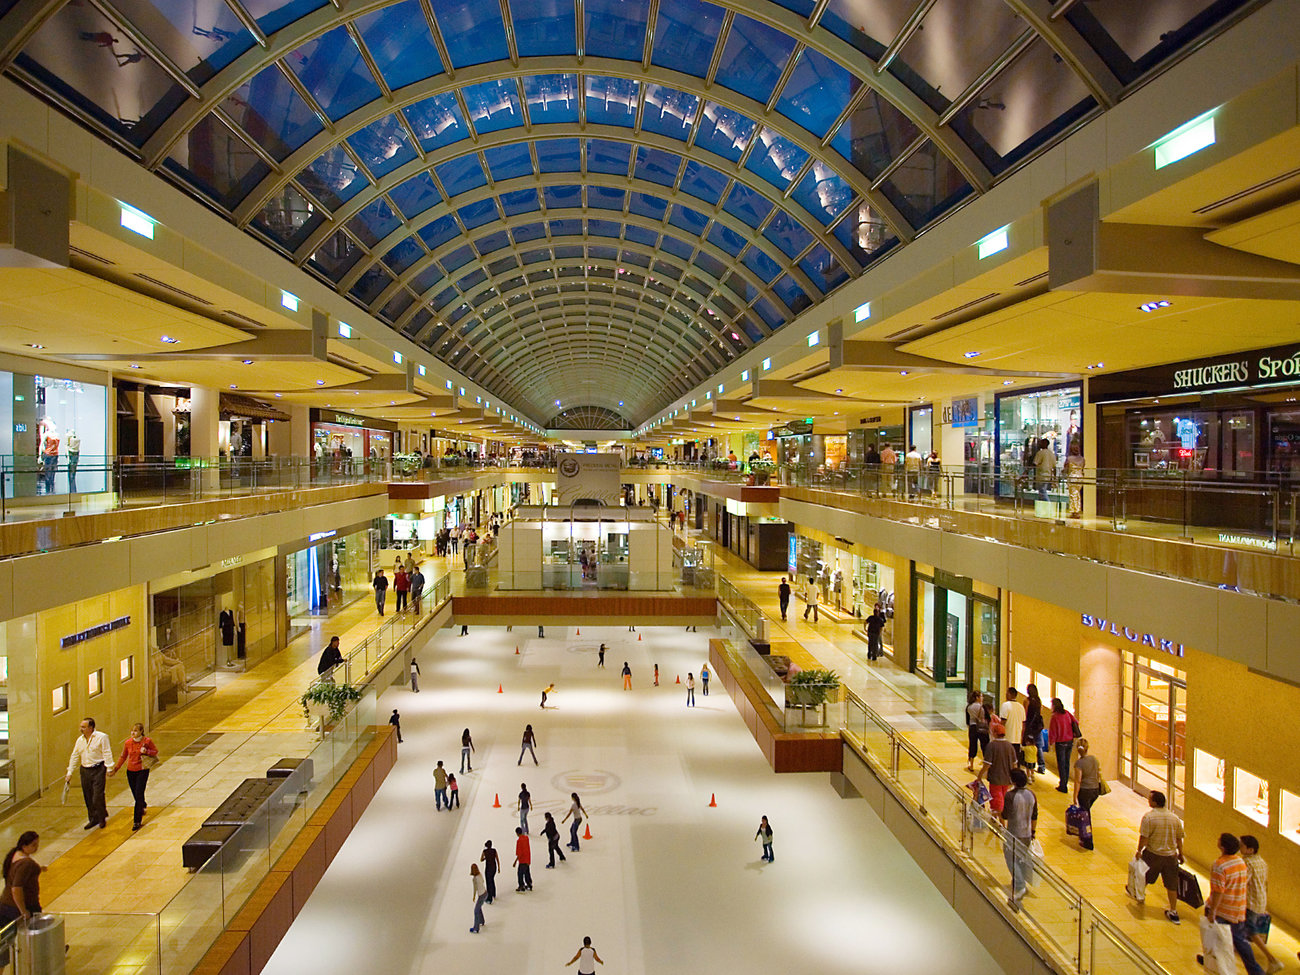 The Galleria Mall in Houston